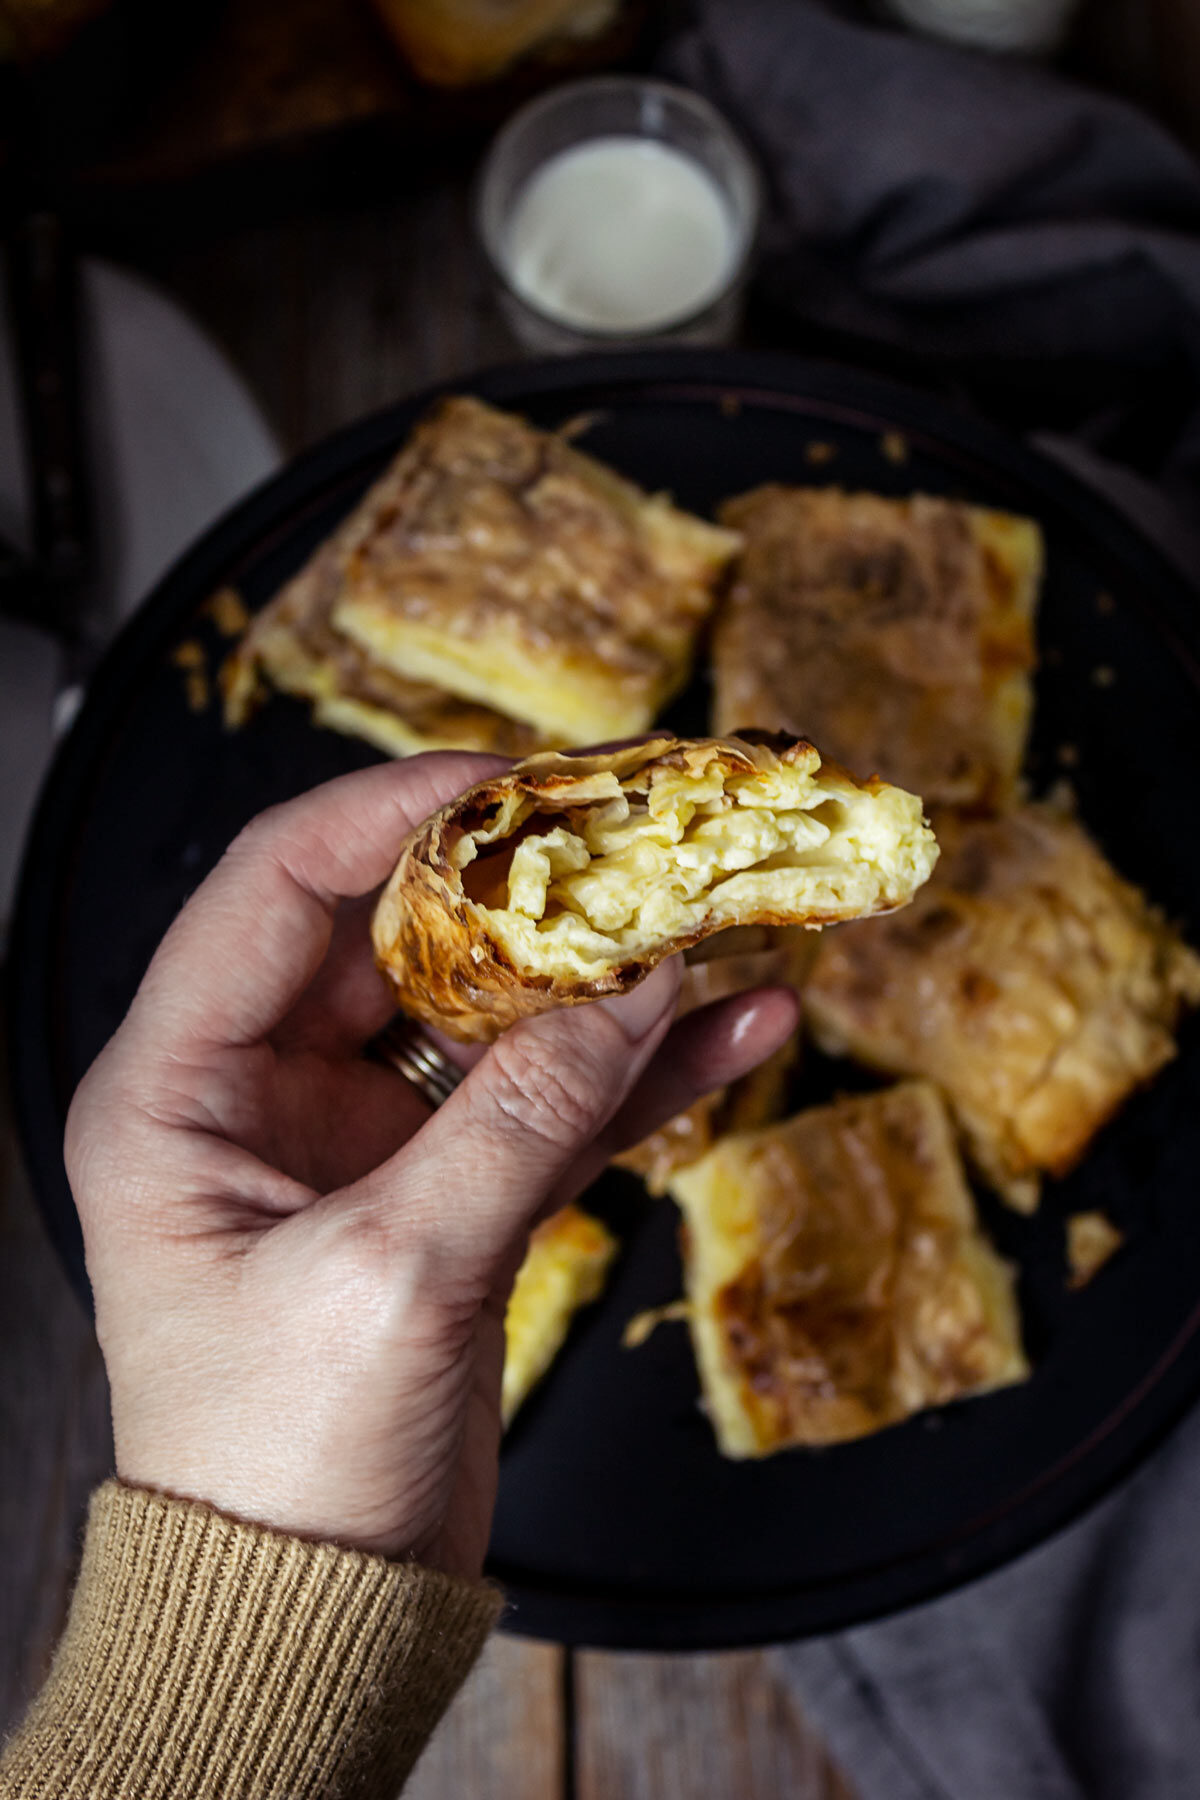 A person holding a piece of fillo cheese pie in a hand showing the filling inside.